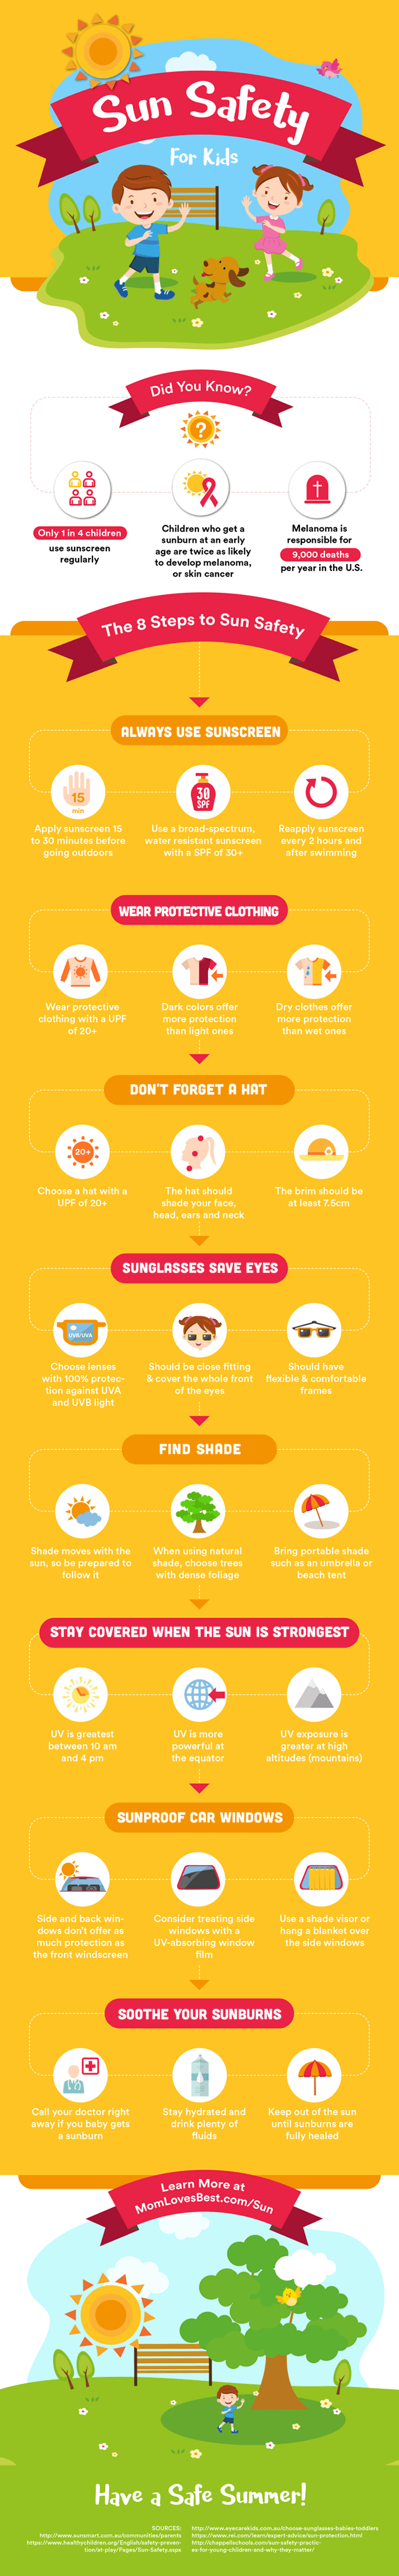 Sun Safety For Kids Infographic.png